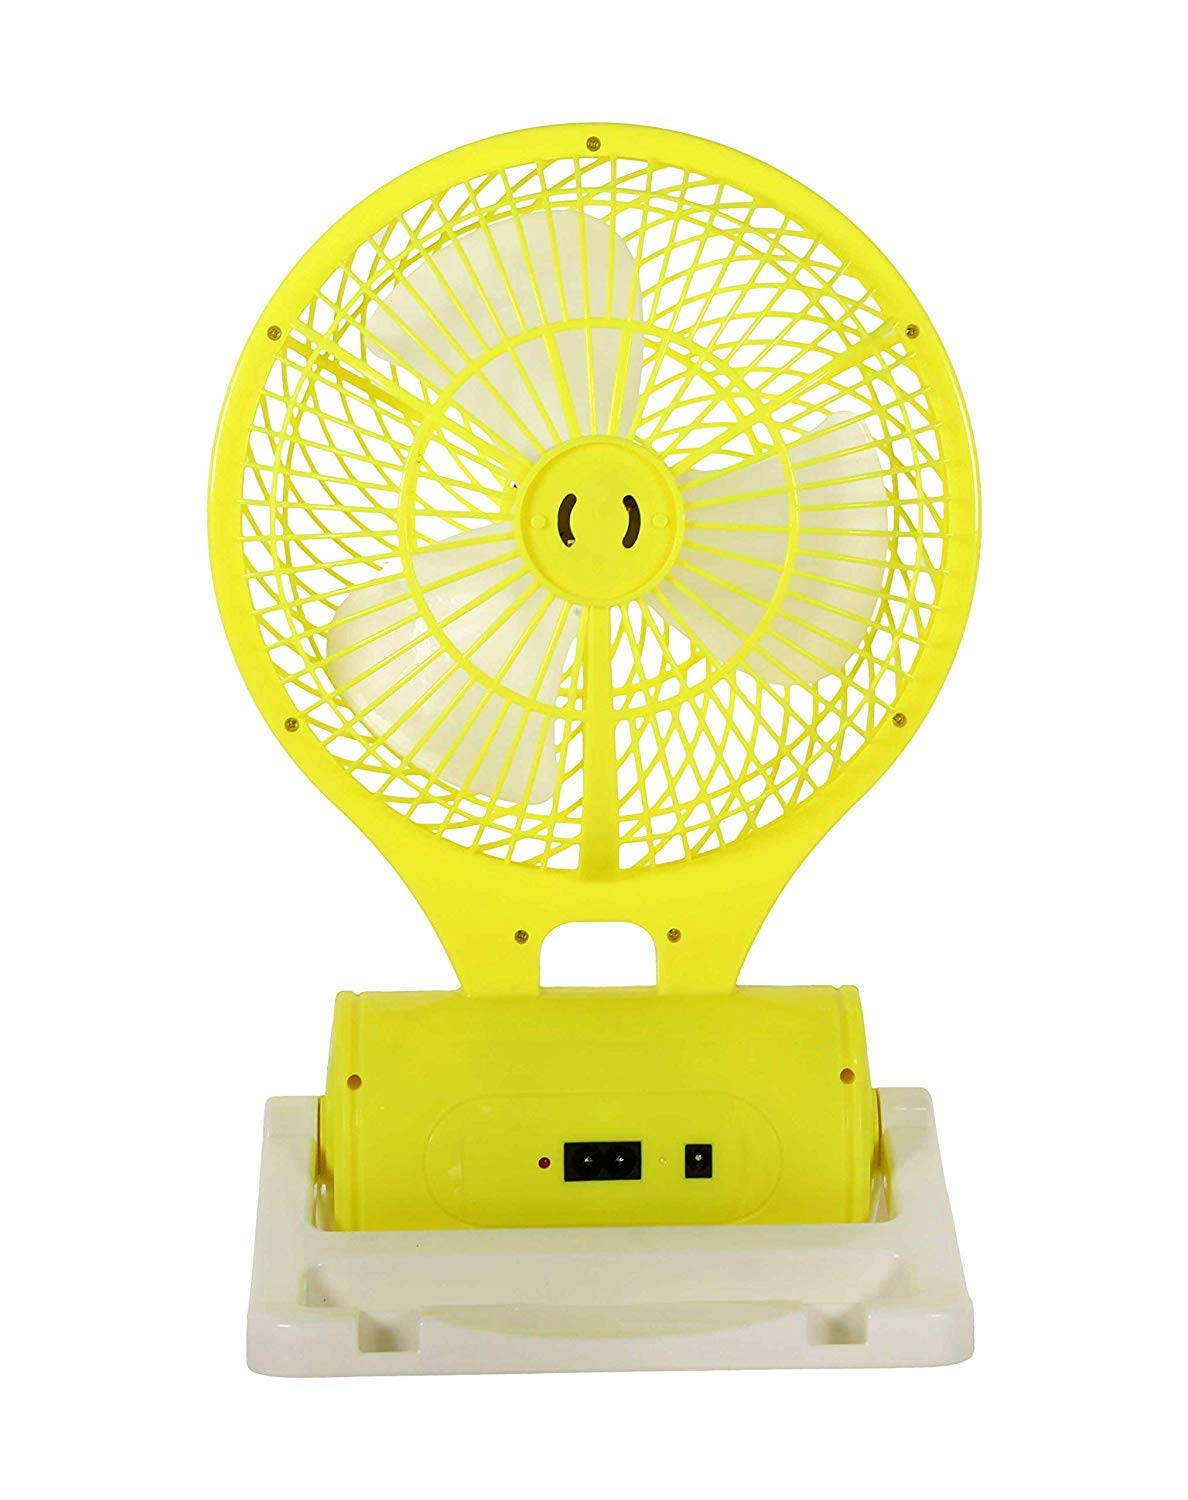 MICMAC Powerful Rechargeable Table Fan with 21 LED Light